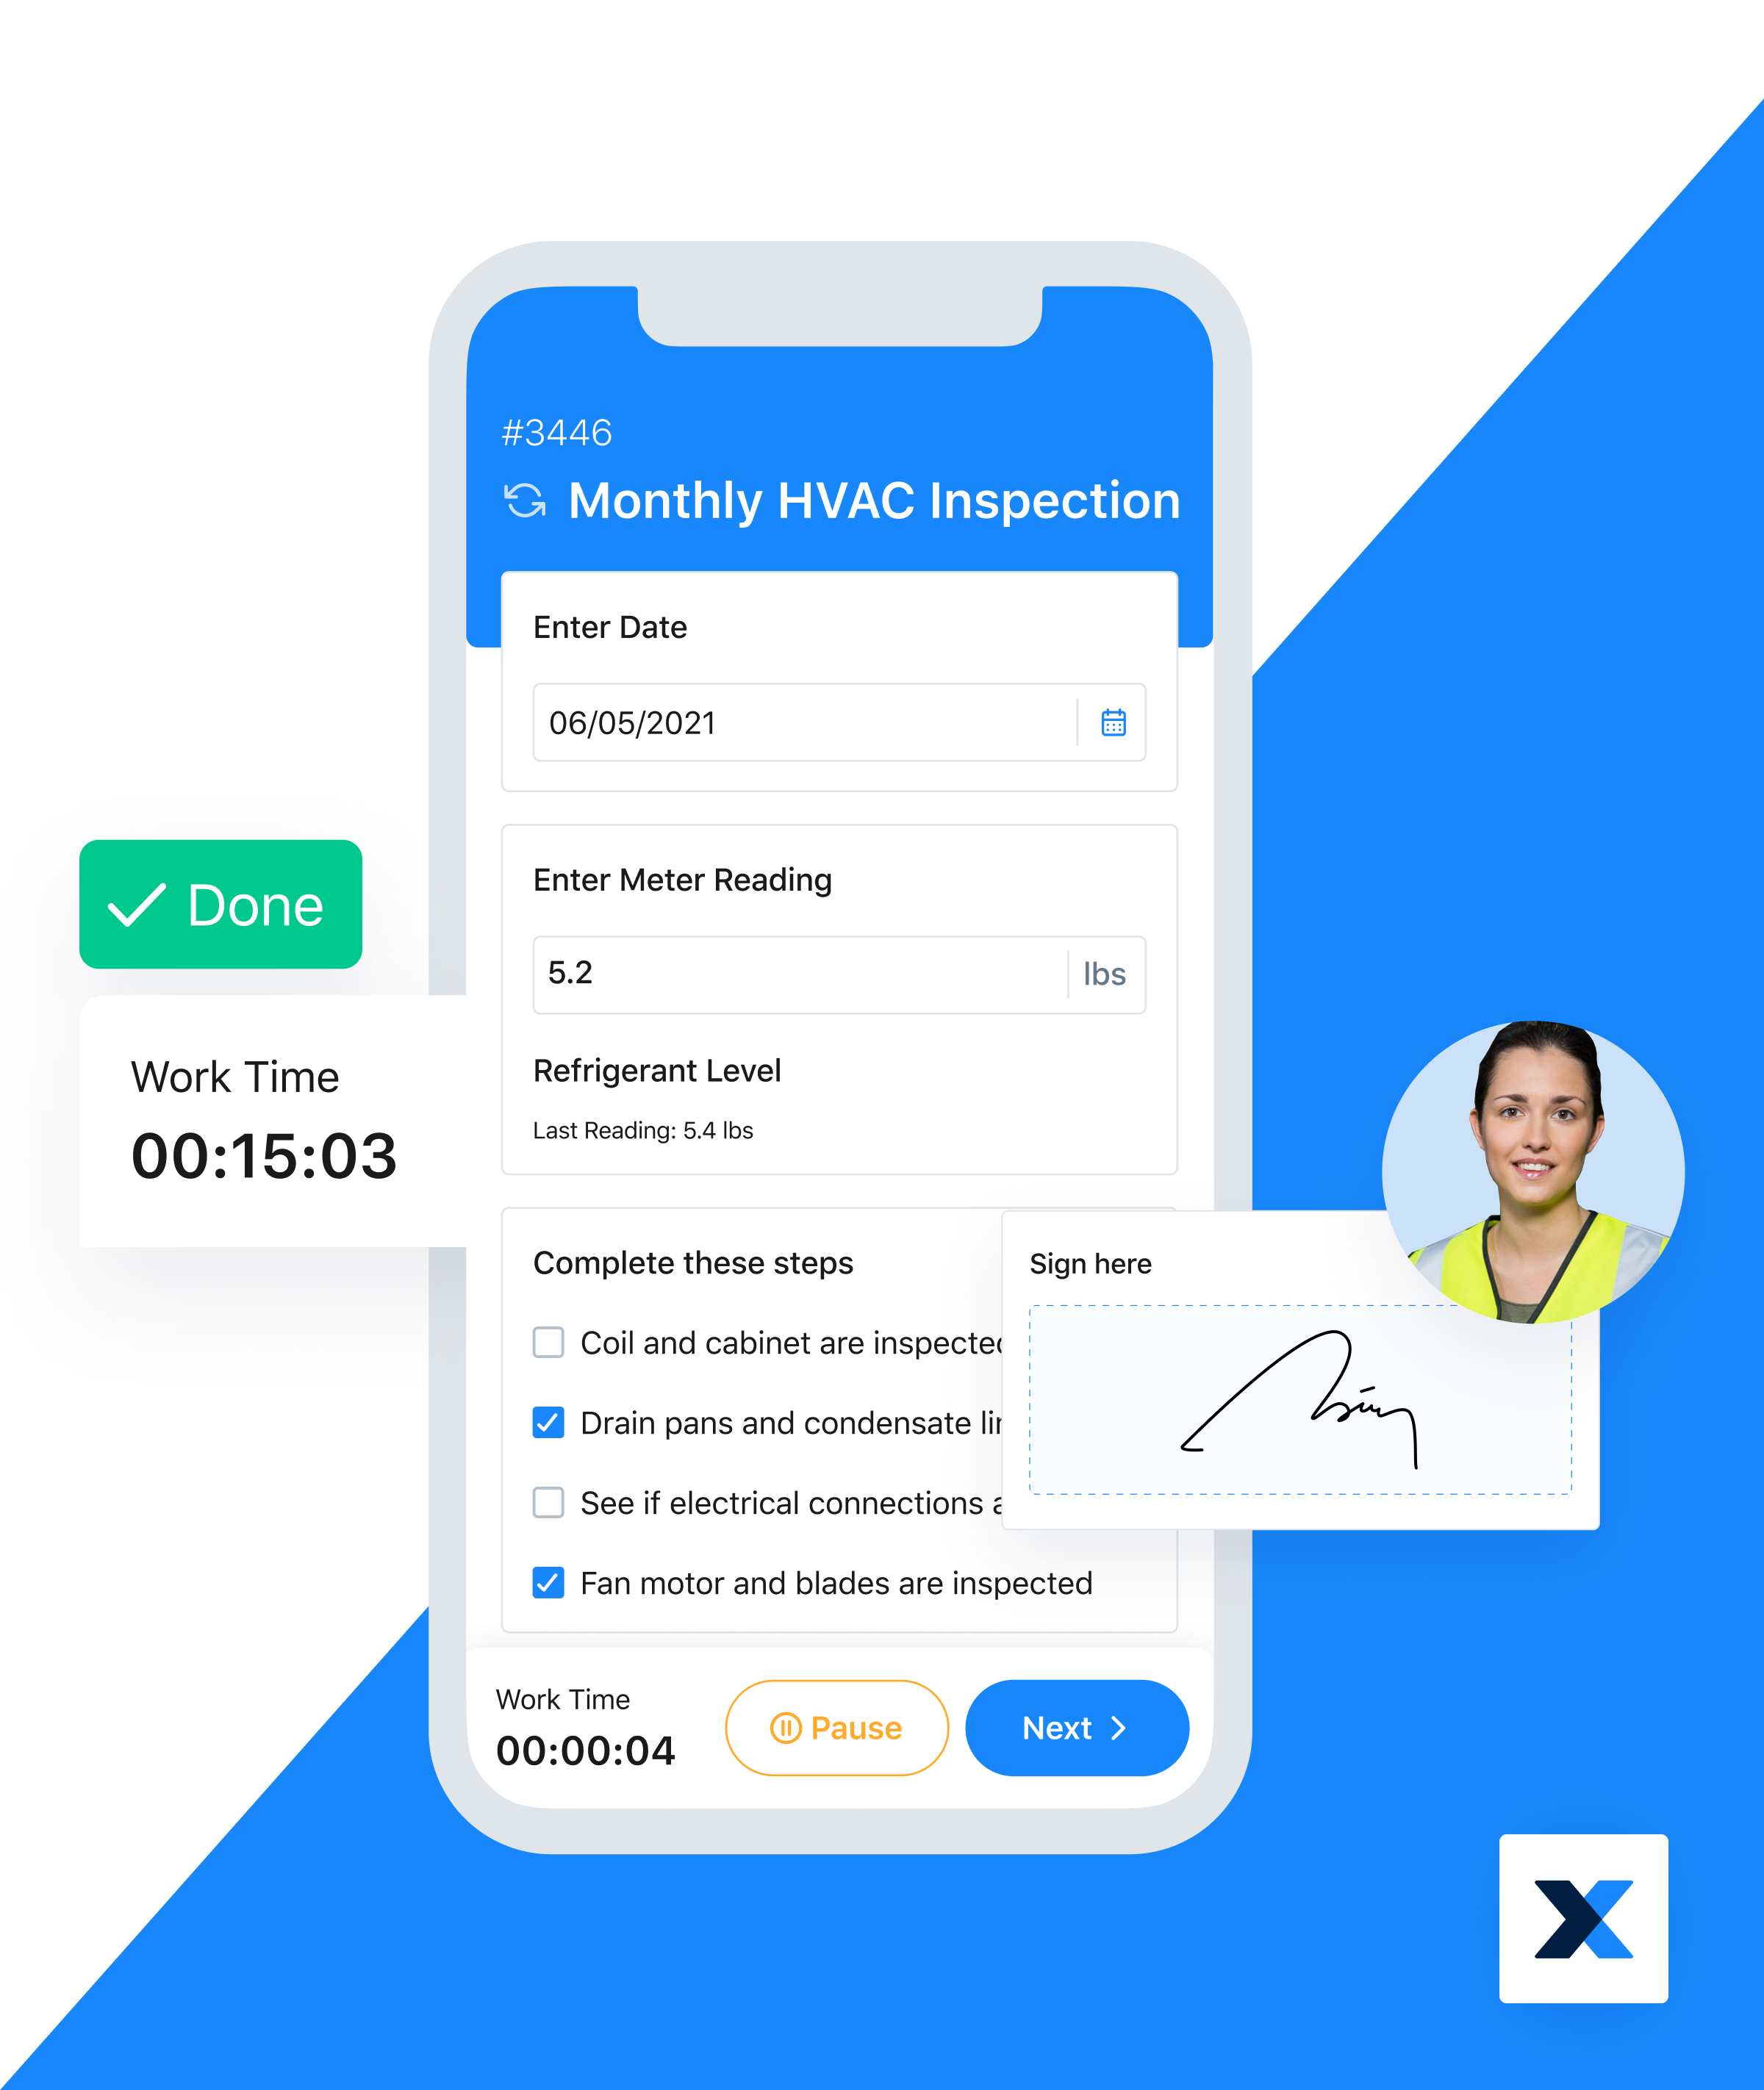 MaintainX Software - Manage inspections and track time with ease